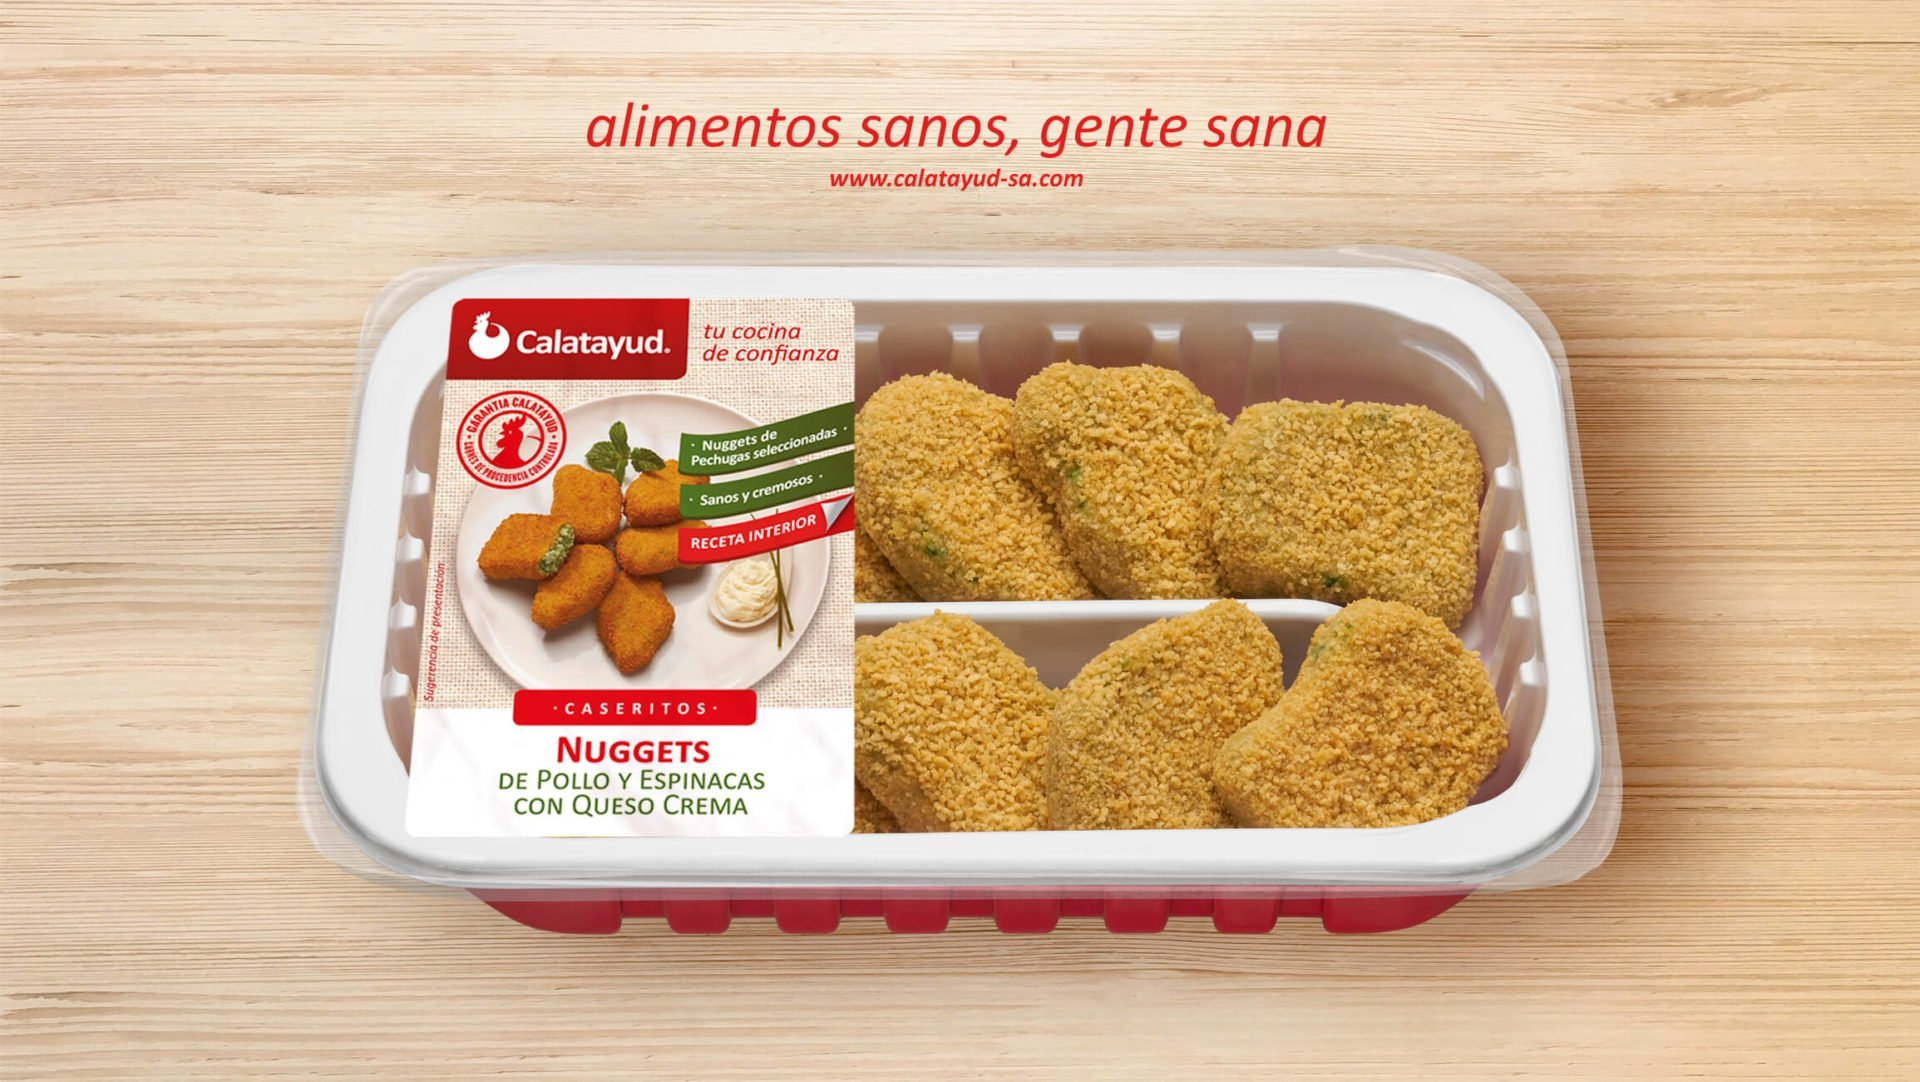 diseño-packaging-nuggets-pollo-calatayud-alimentacion-saludable